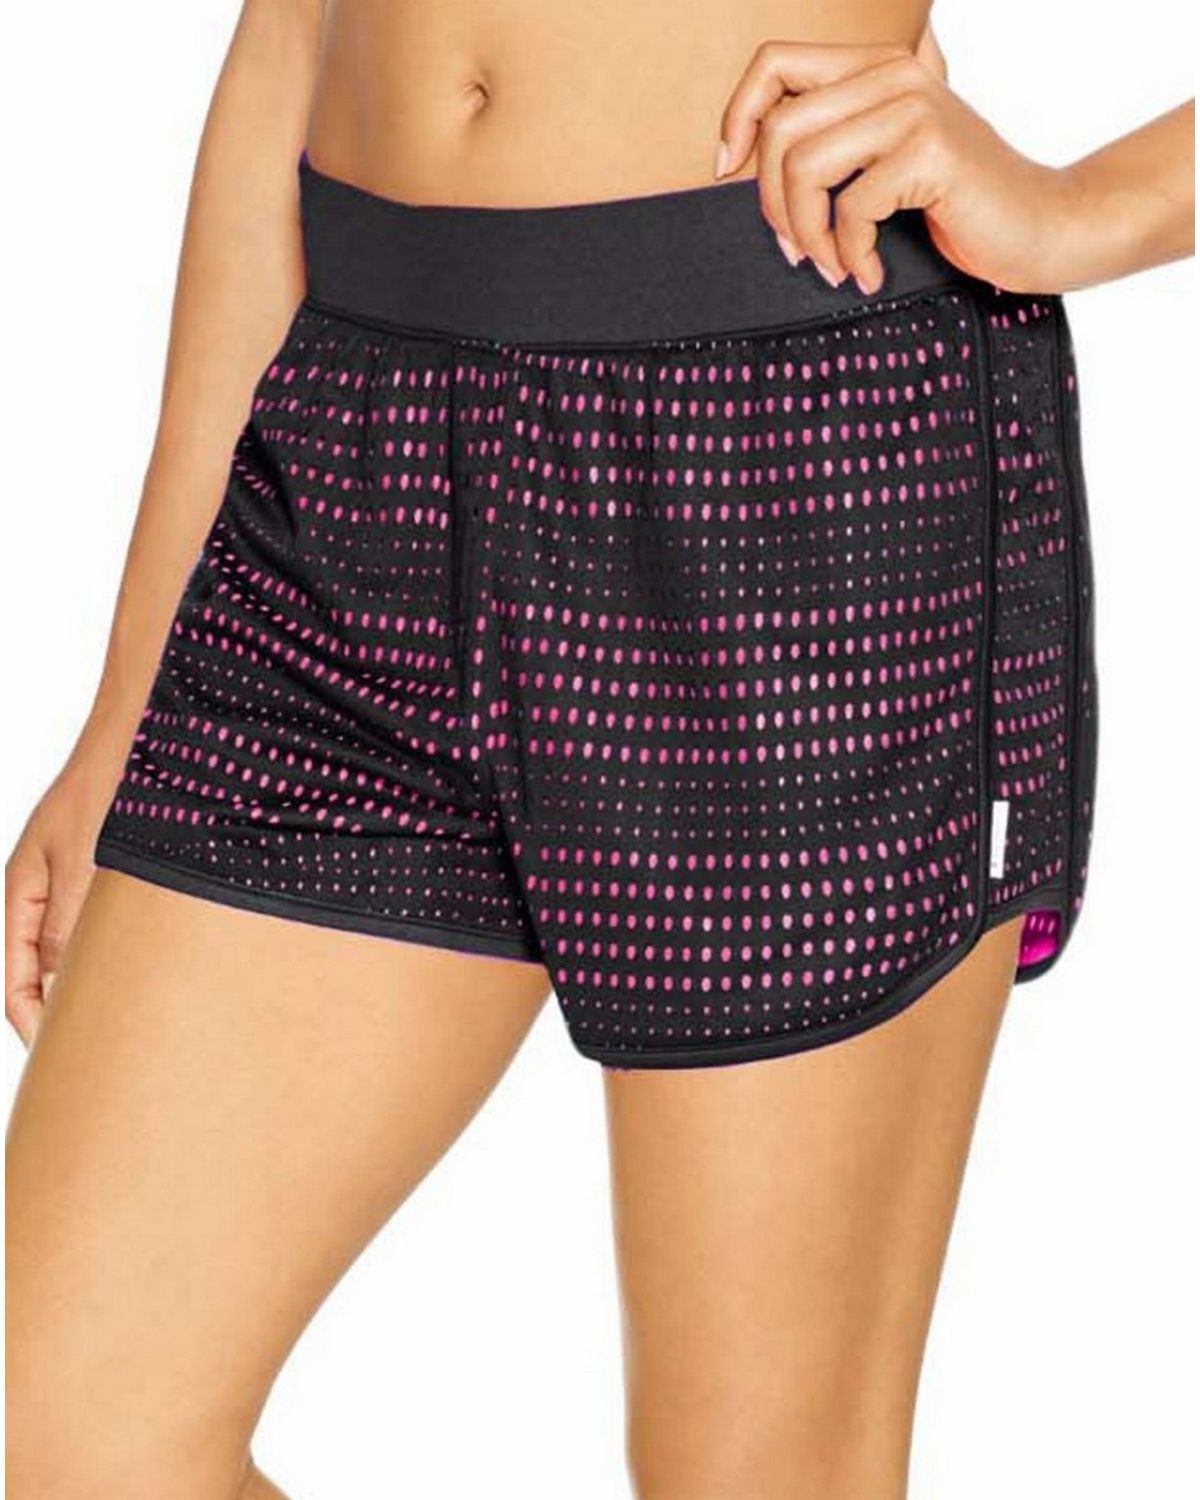 Champion M0602 Womens Mesh Shorts - Black/Pinksicle - S M0602